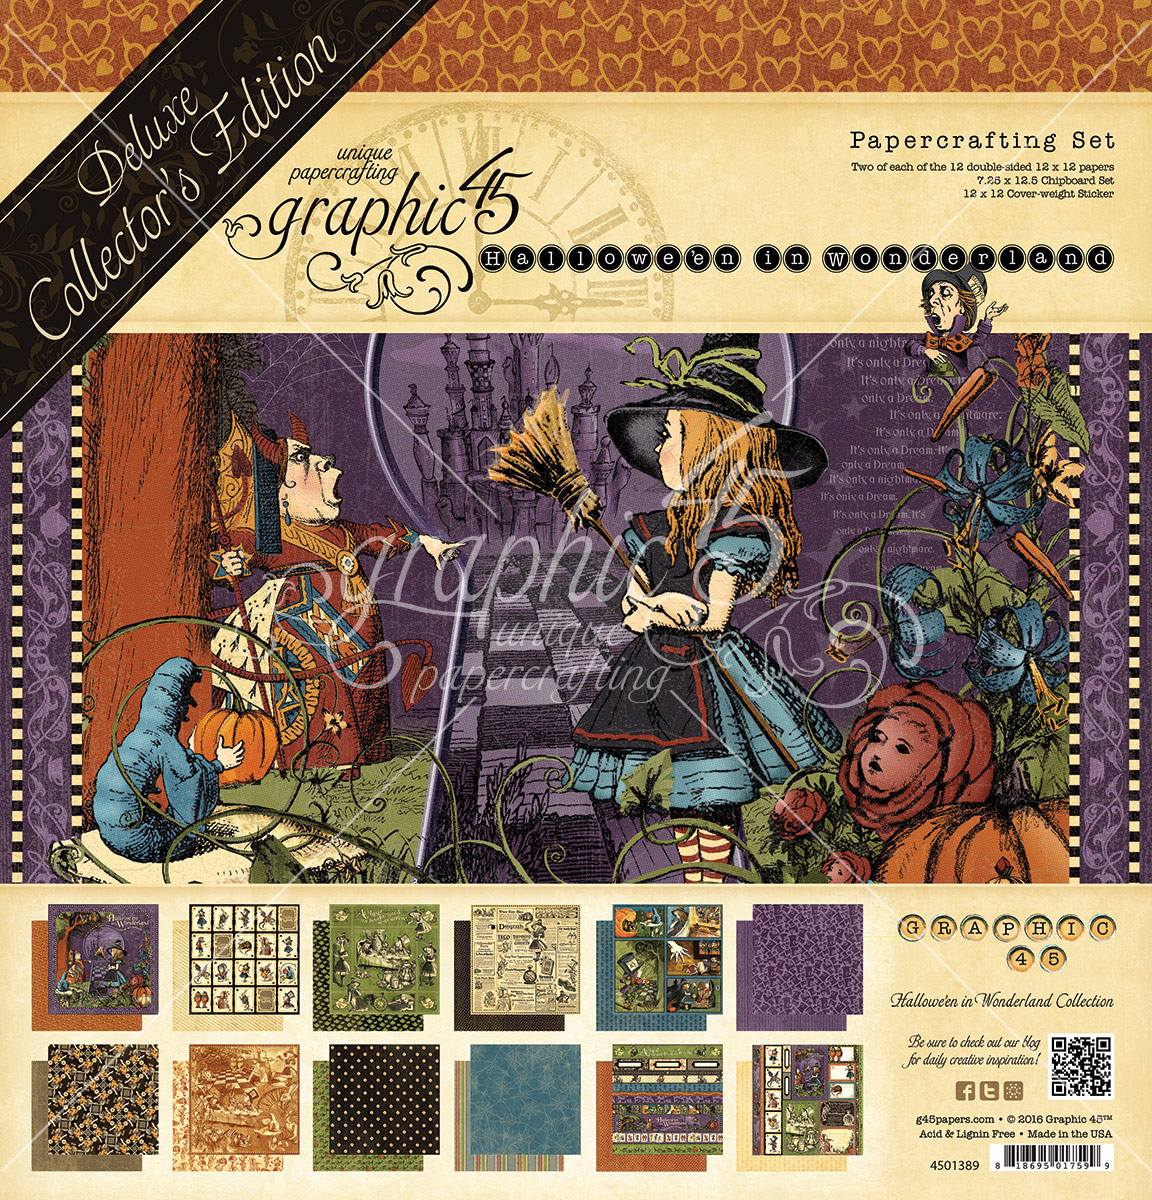 Graphic 45 - Hallowe'en In Wonderland (Collector's Edition + reissued papers)